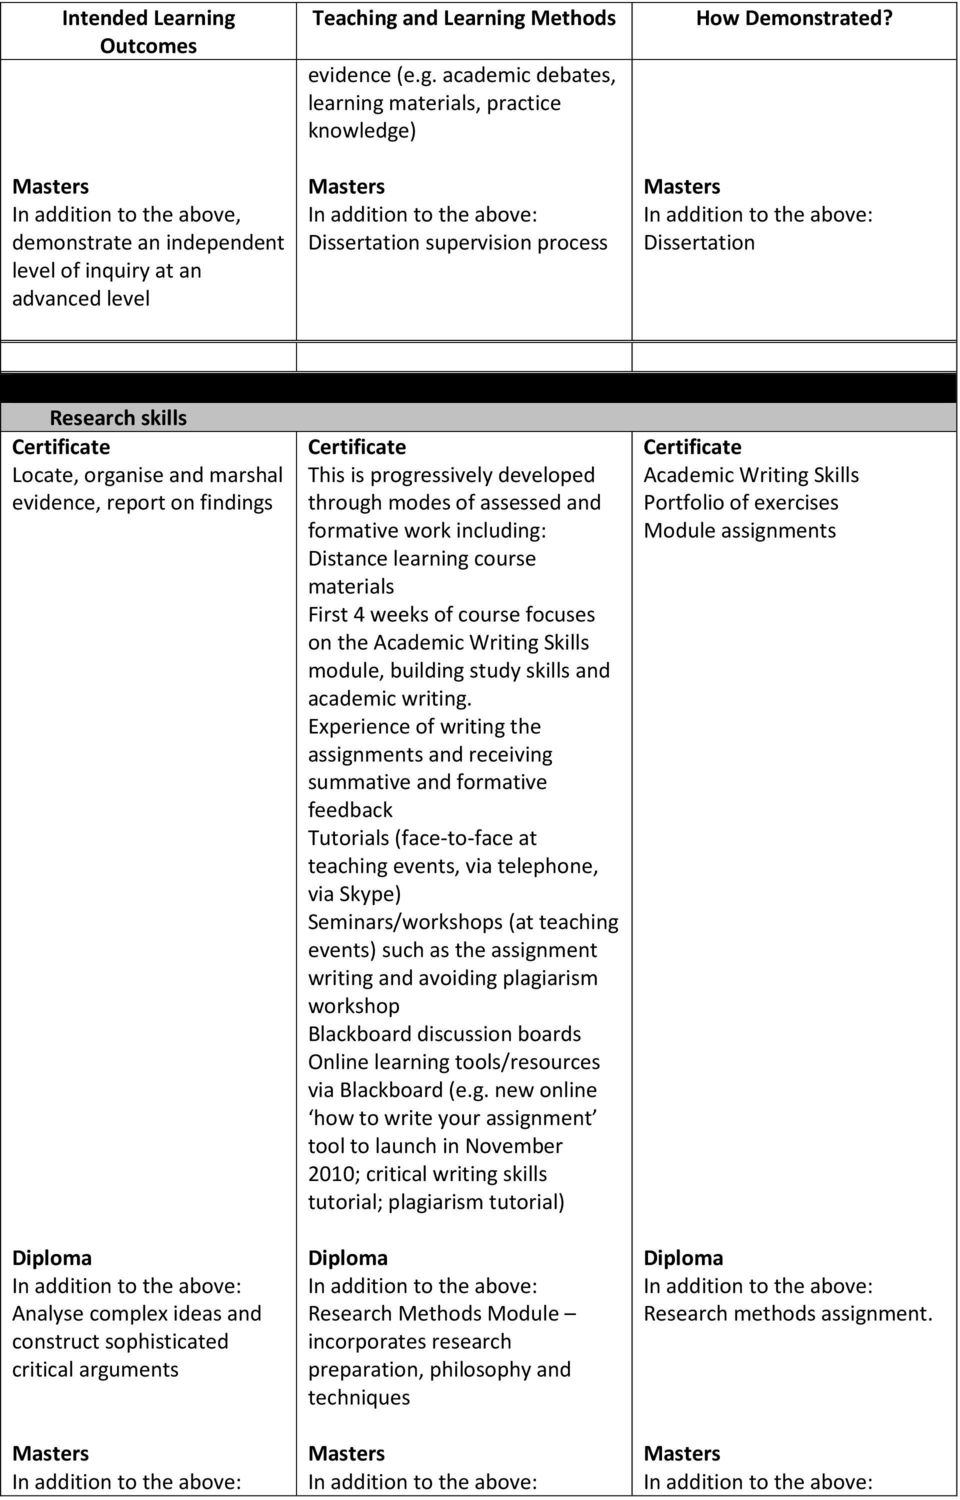 Transferable skills This is progressively developed through modes of assessed and formative work including: First 4 weeks of course focuses on the Academic Writing Skills module, building study